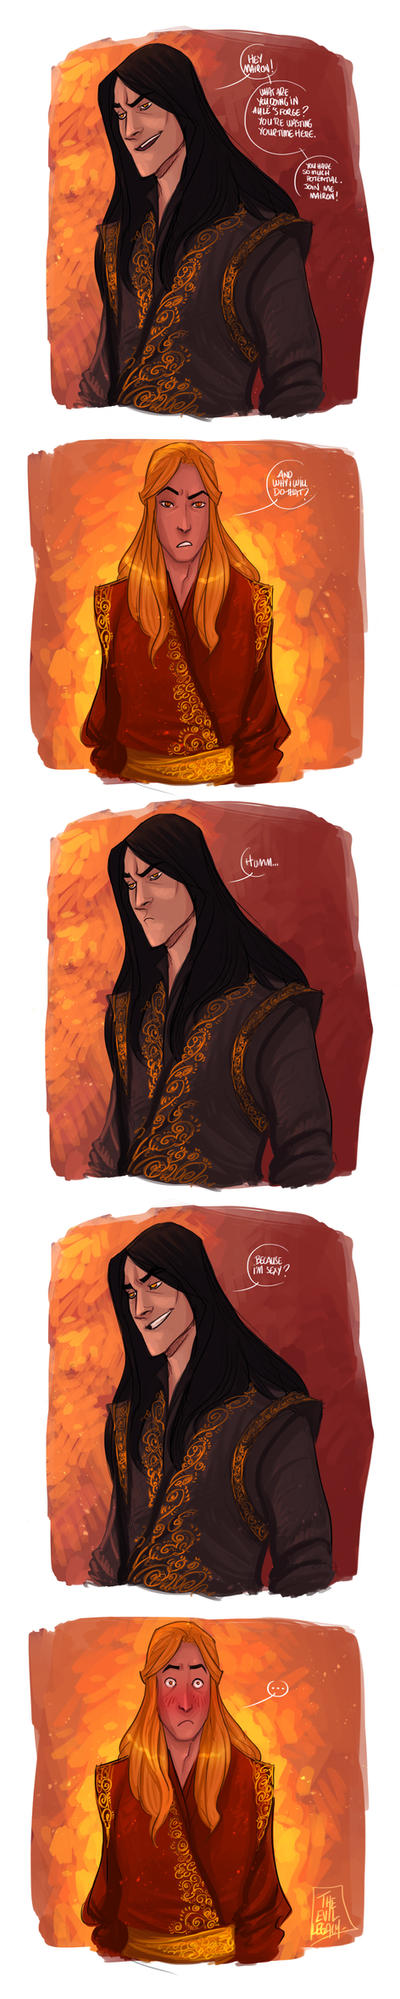 LOTR - Sexy Melkor by the-evil-legacy